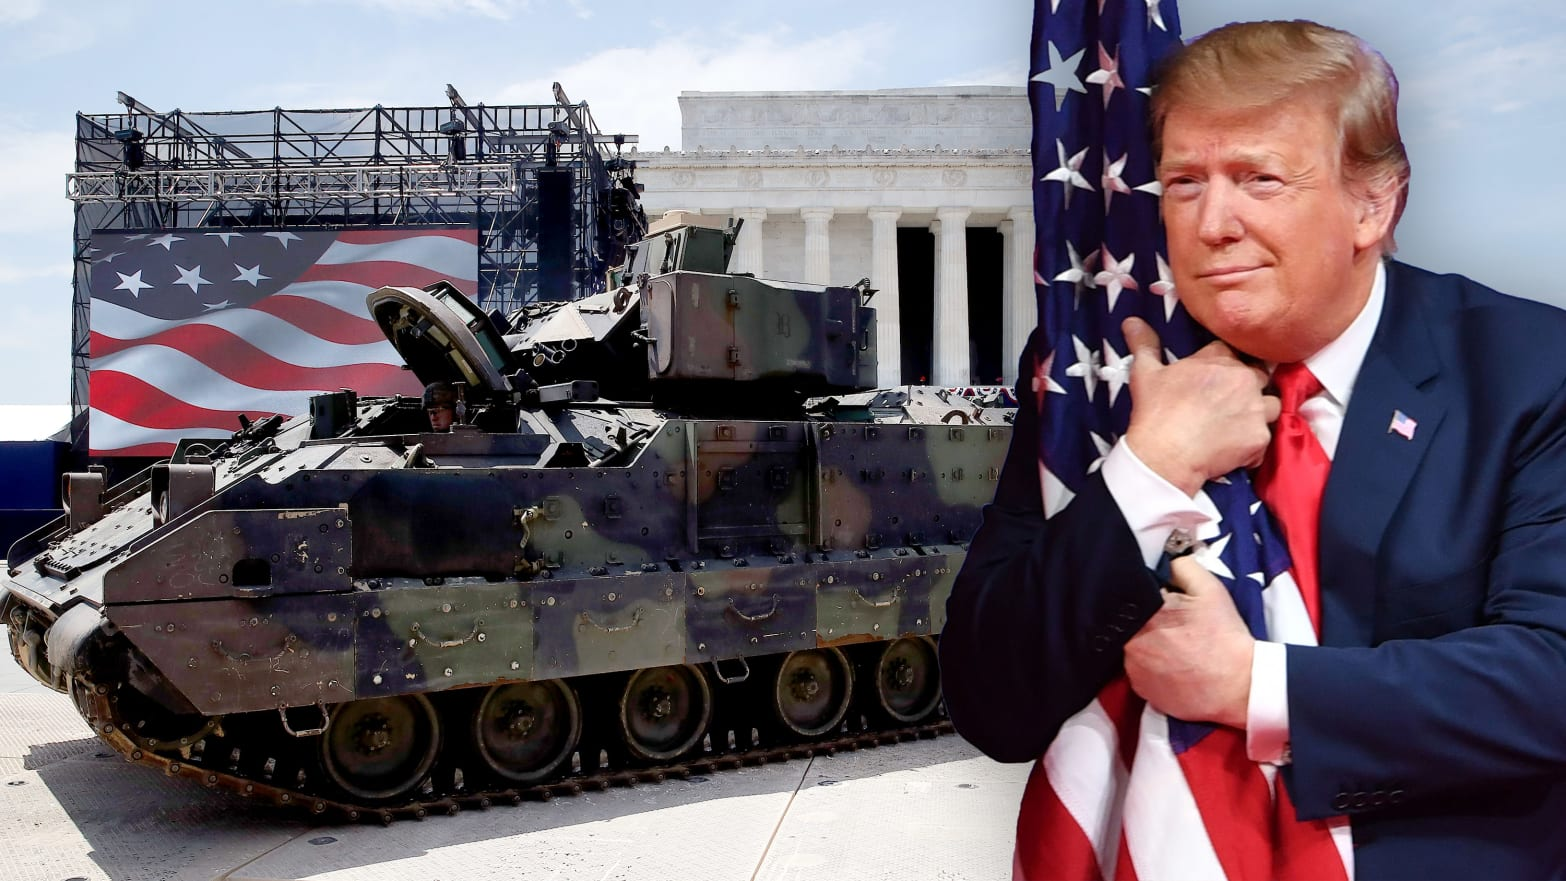 This July 4th Had Everything: Tanks, Trump—and Scandal